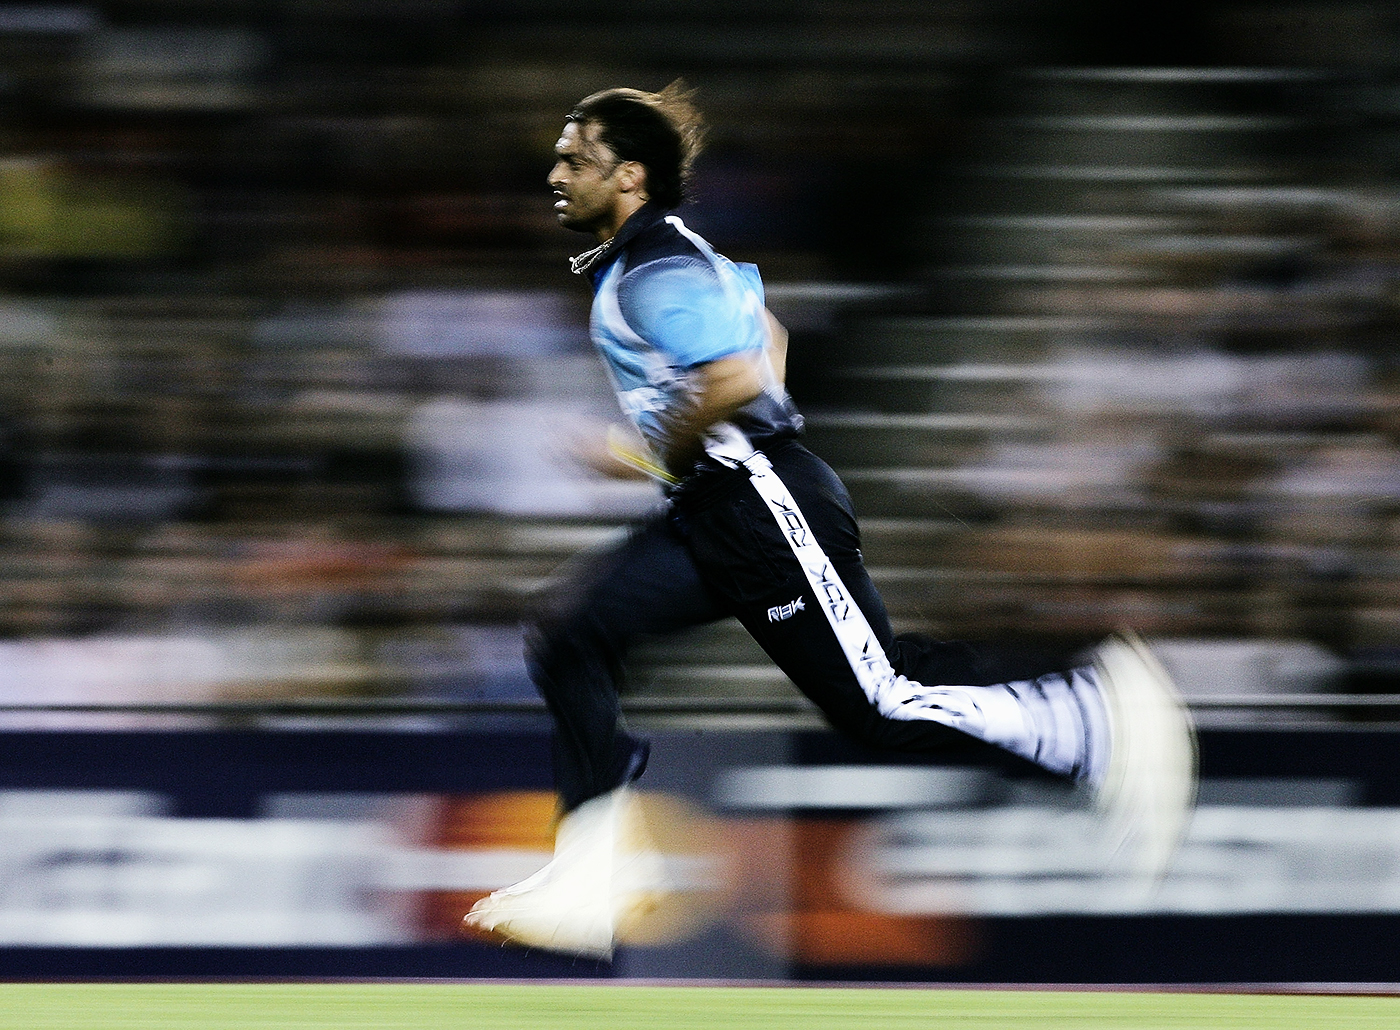 Flo Sho: what would be the state of aerodynamic technology today if Akhtar's hair had been tested as much as his arm?